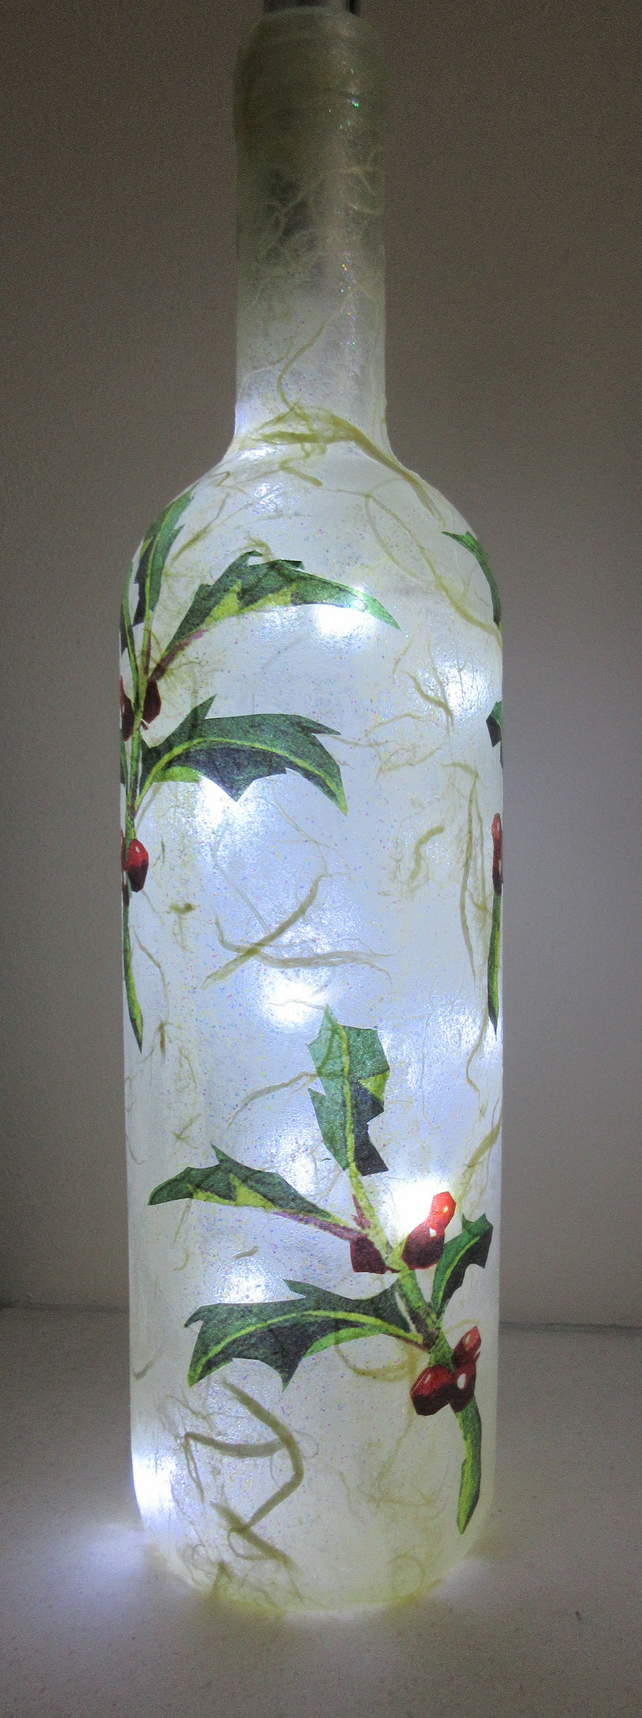 Bottle with Emma Bridgewater Holly tissue decoupage - vase or lights